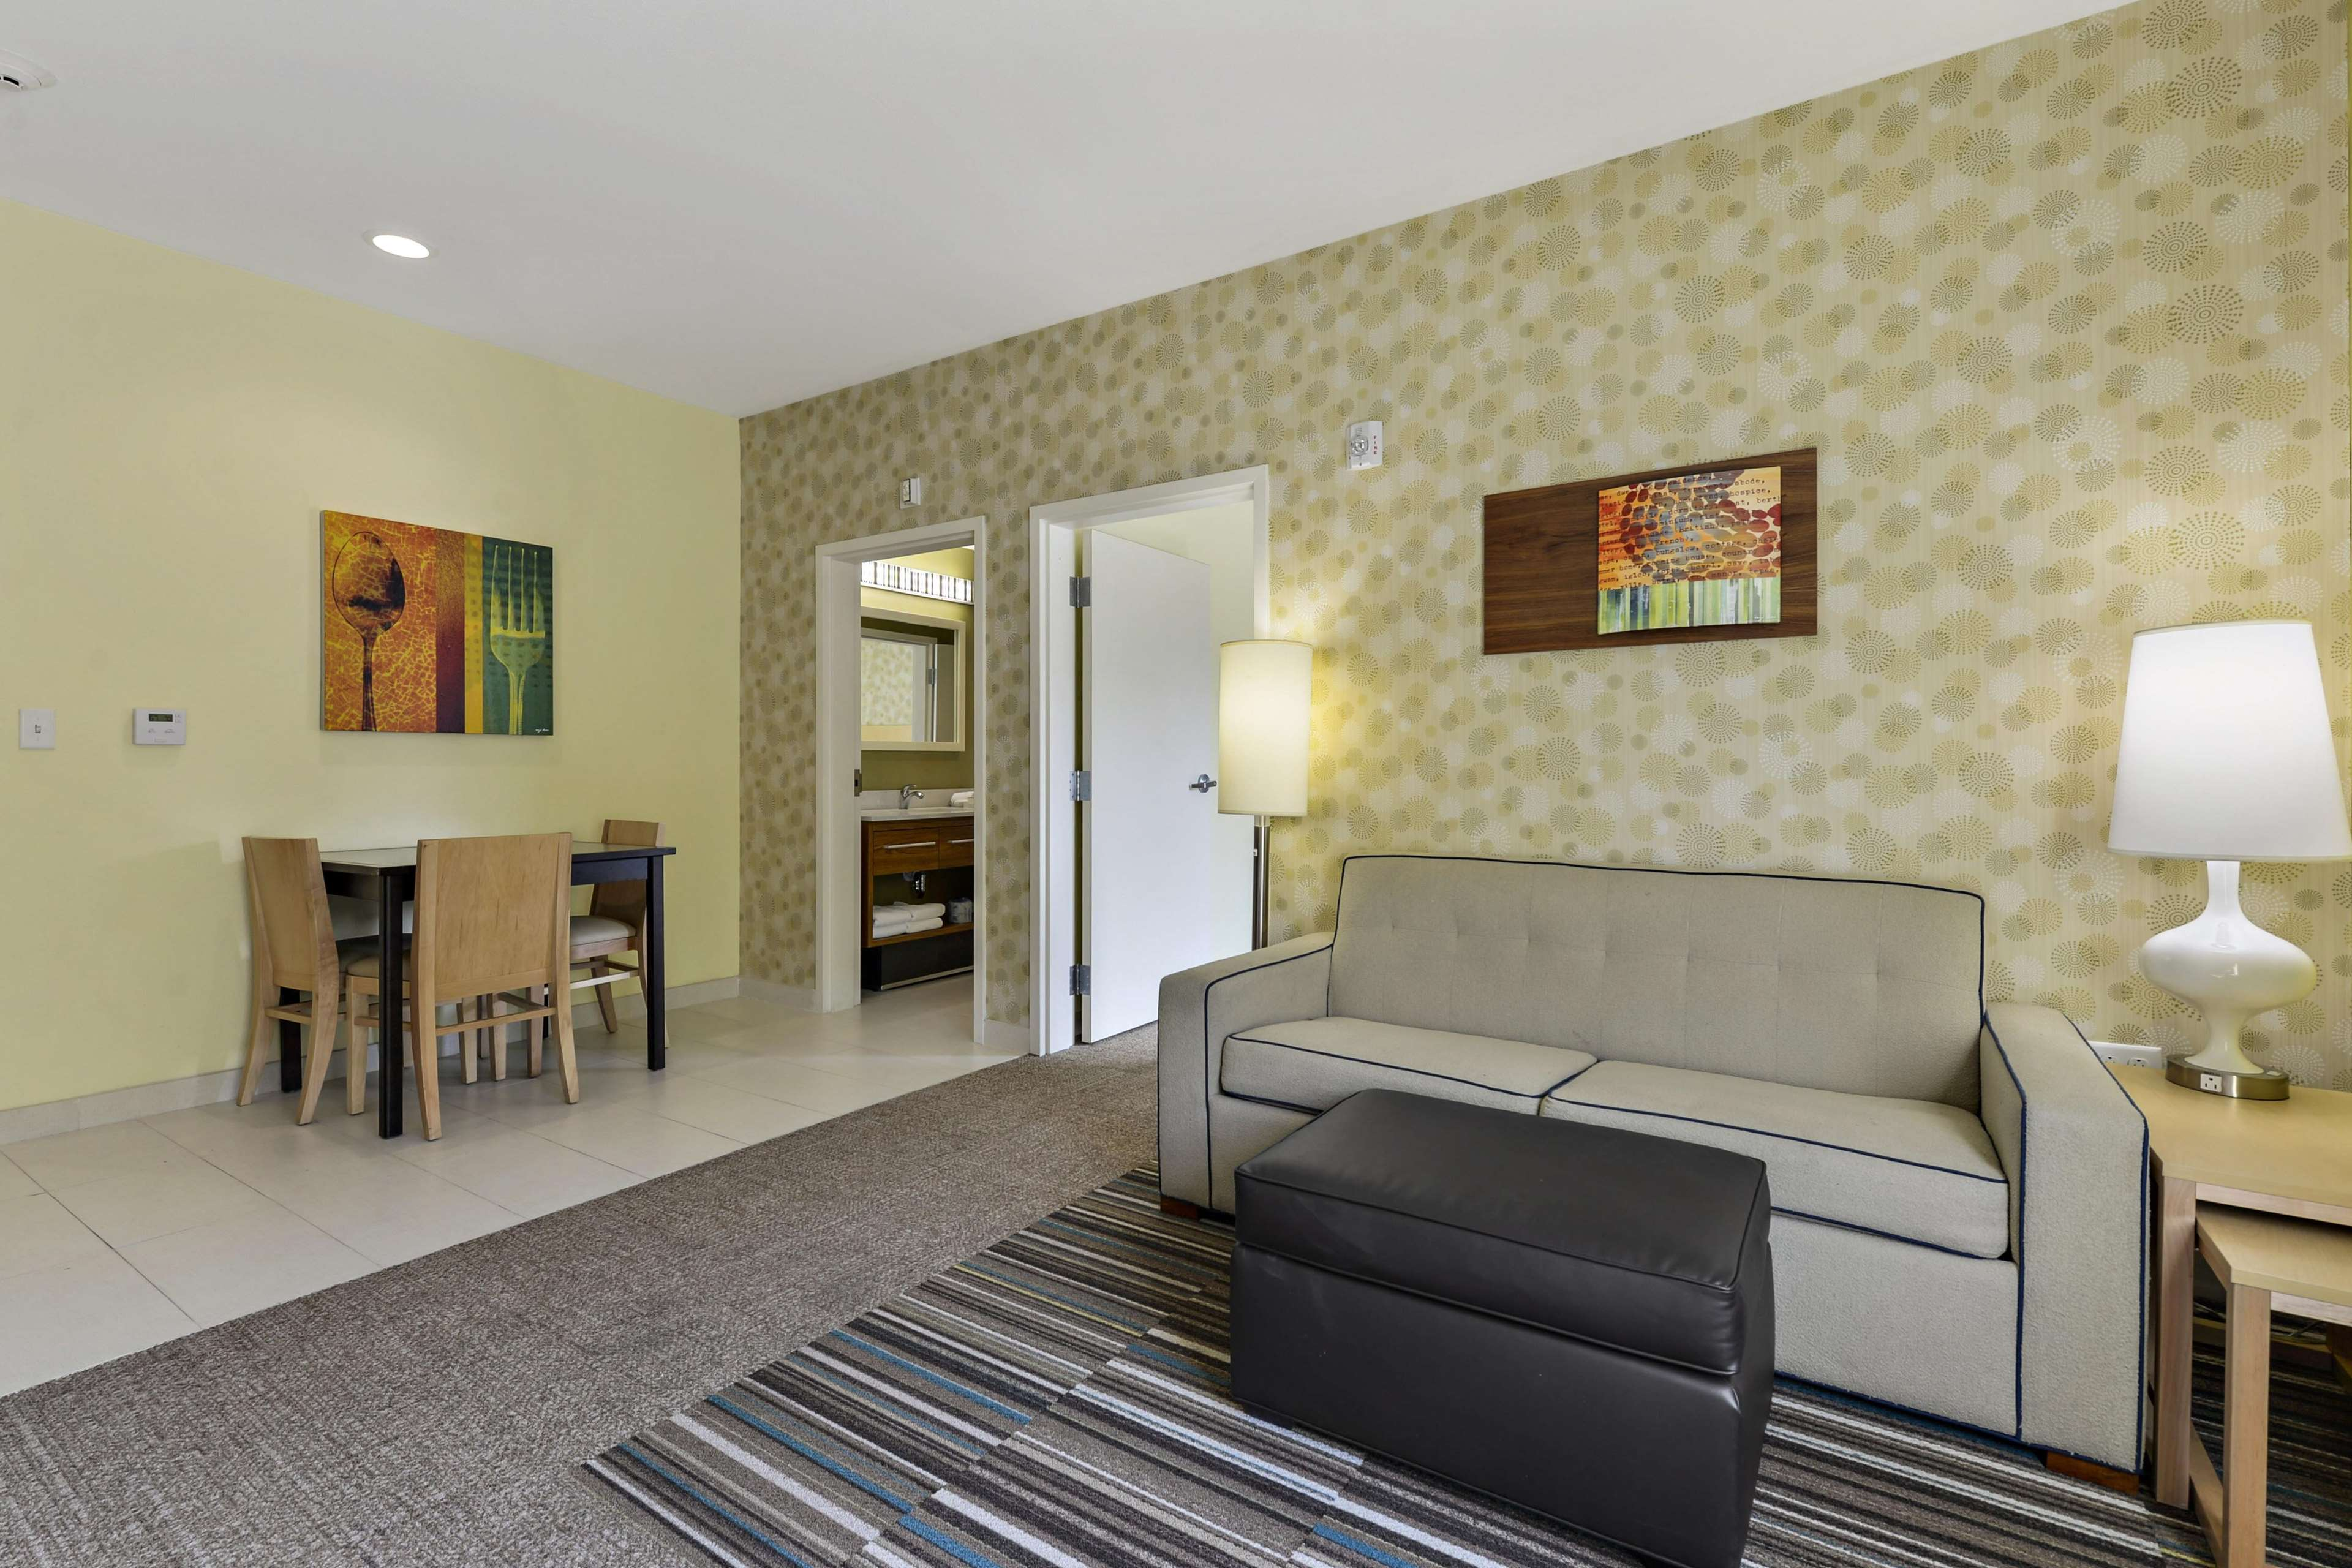 Home2 Suites by Hilton Gulfport I-10 image 31